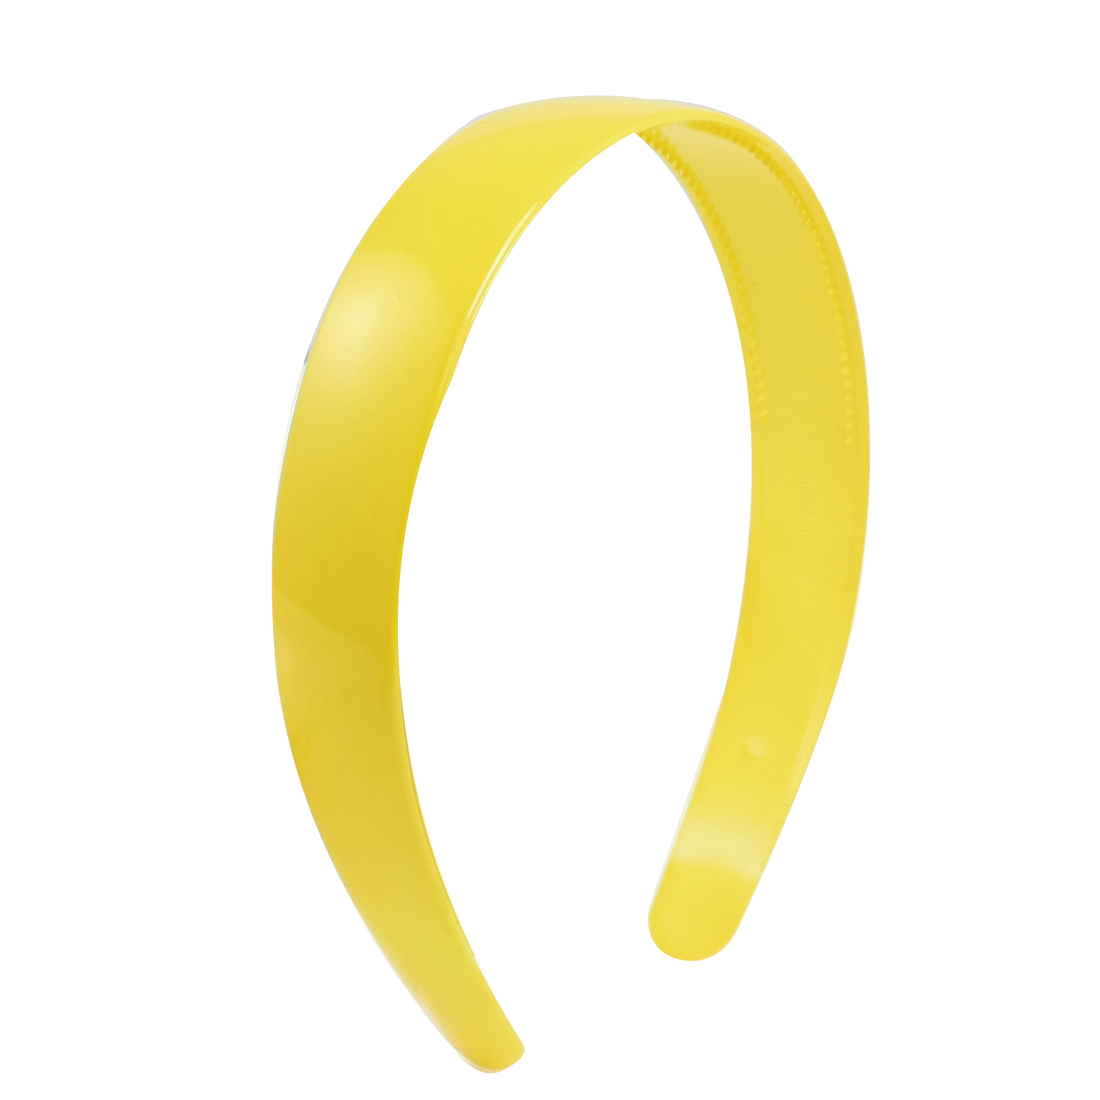 Lady Yellow Plastic Hair Hoop Headband Ornament w Teeth